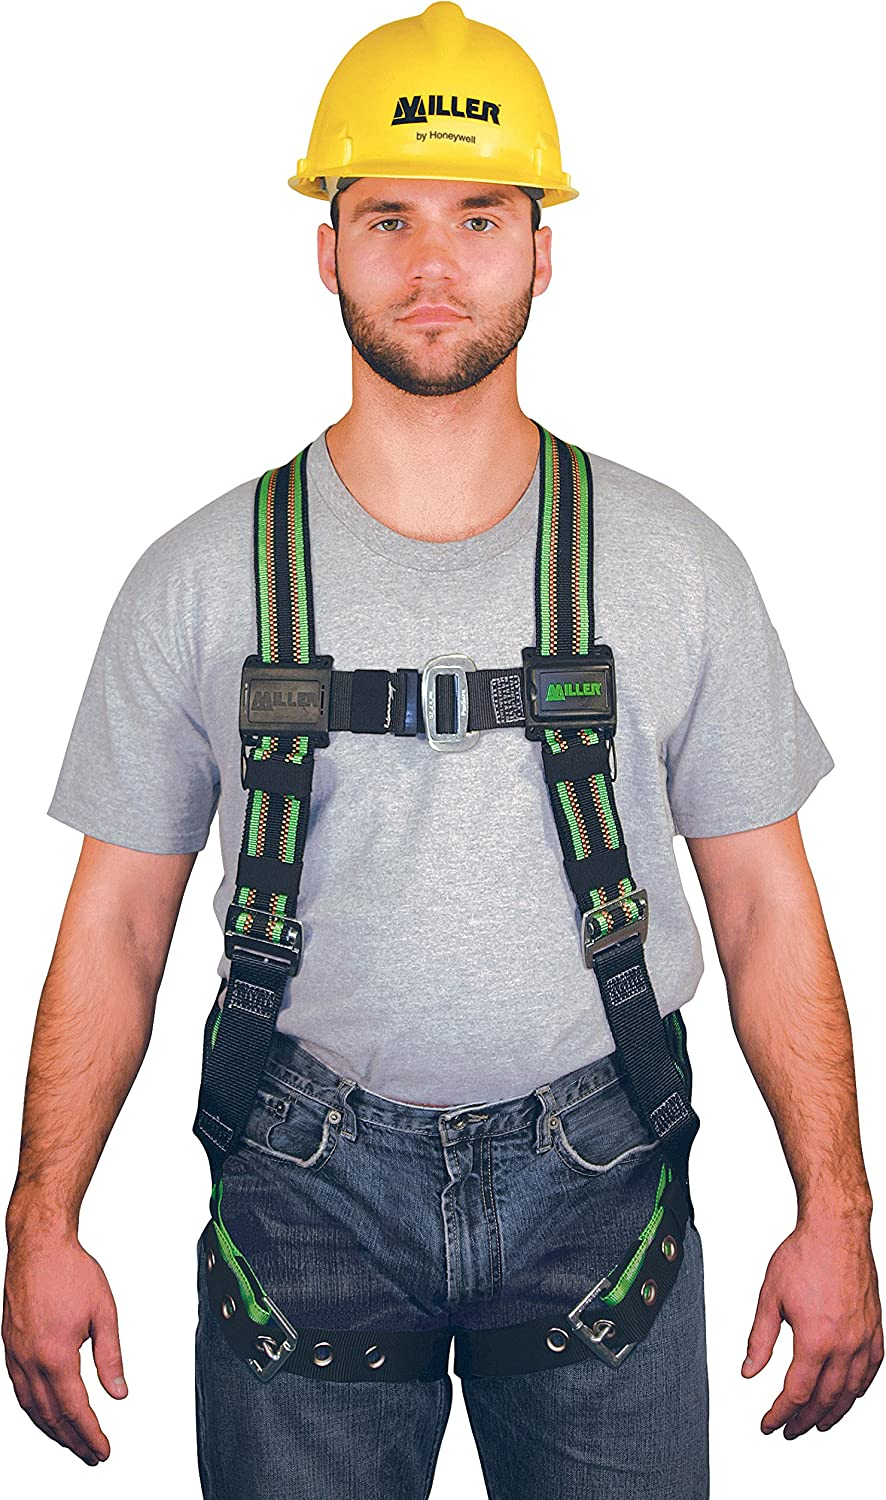 Miller DuraFlex Stretchable Full Body Safety Harness with Leg Tongue Buckles, Universal Size-Large/XL, 400 lb. Capacity (E650-4/UGN)